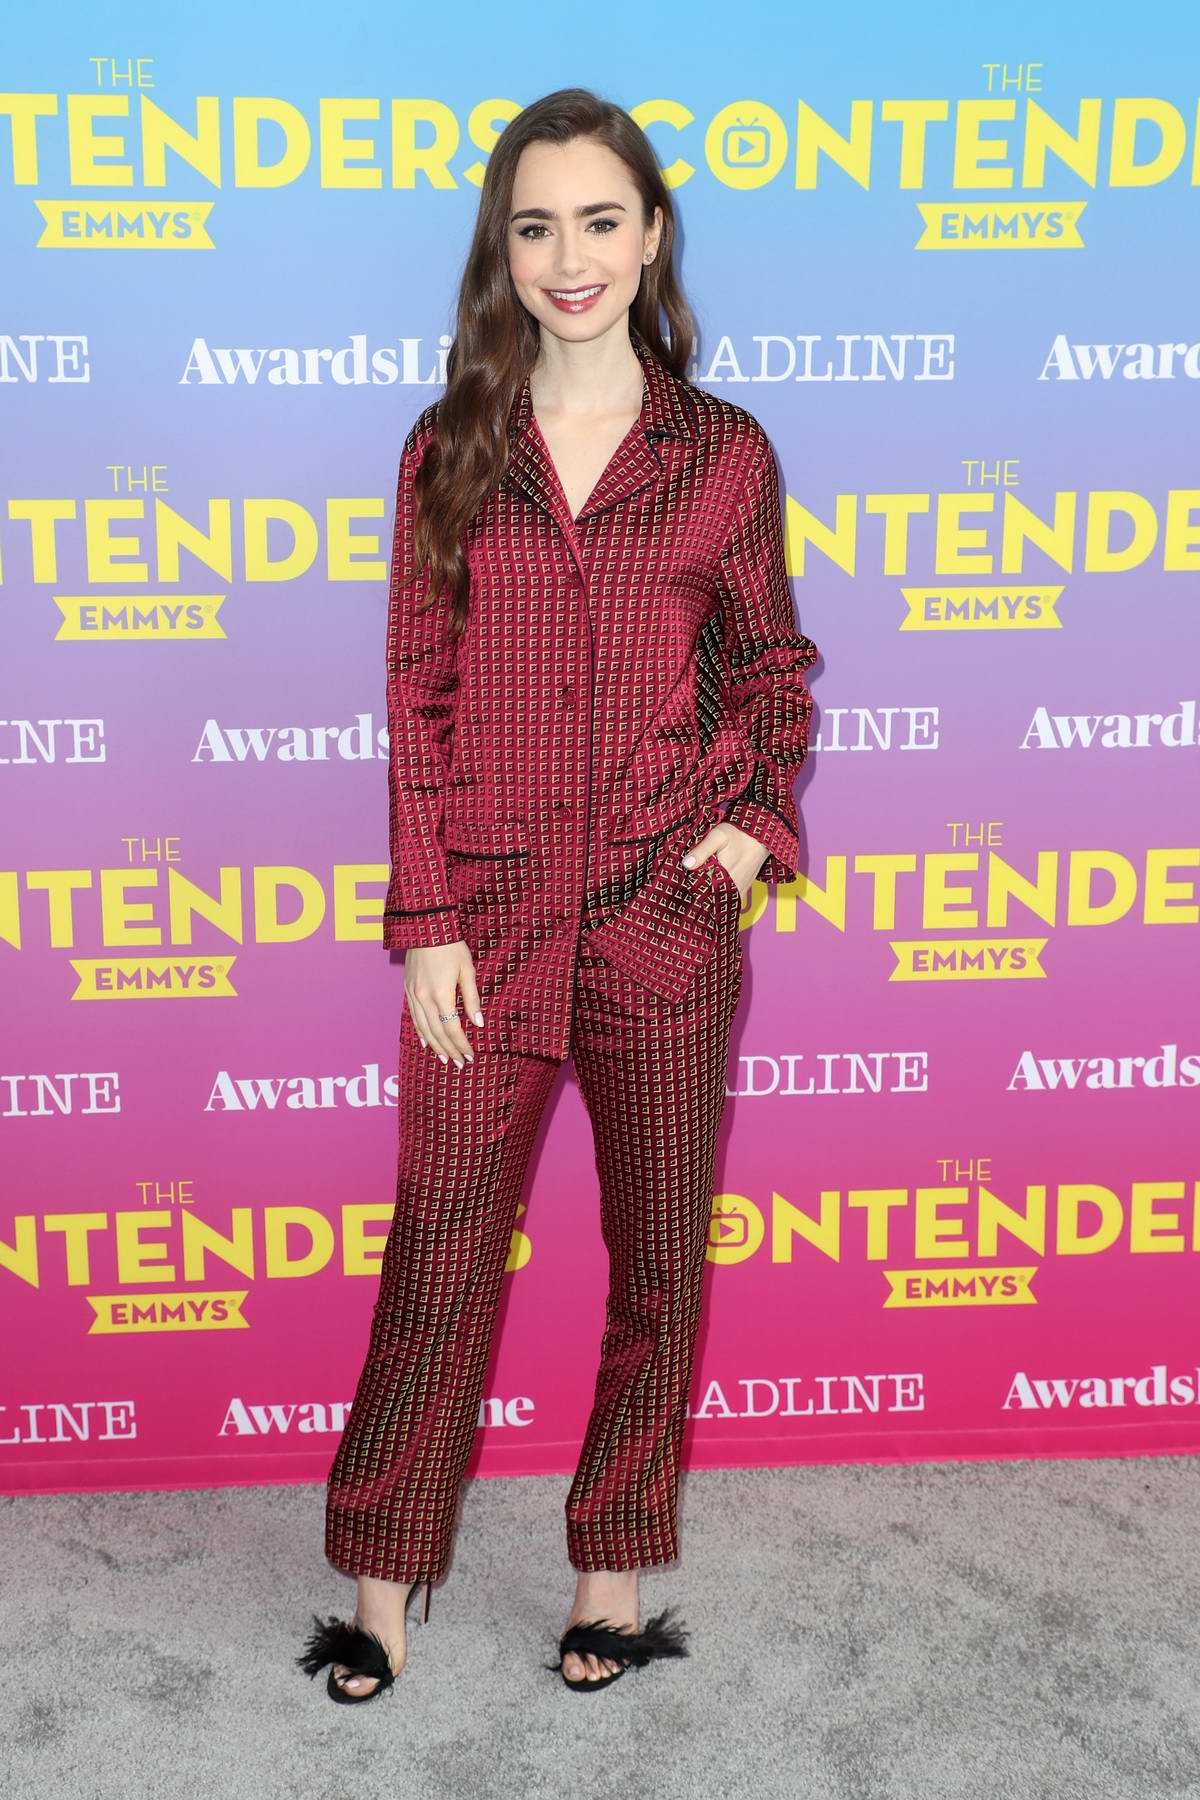 Lily Collins attends Deadline Contenders Emmy Event at Paramount Theatre in Los Angeles